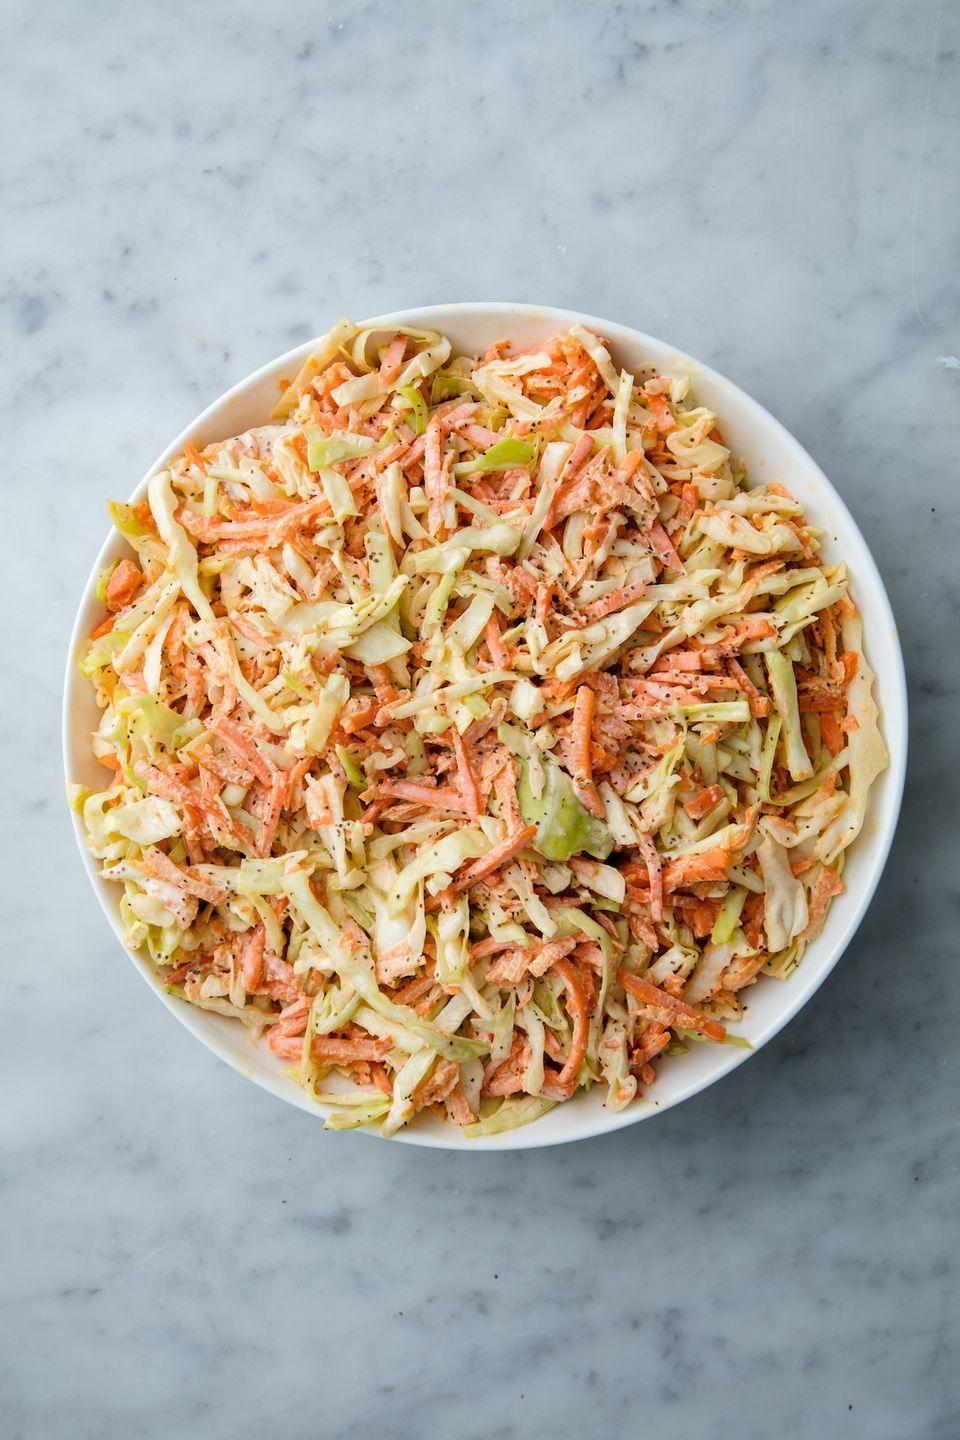 """<p>Serve it as a side <em>and </em>on your chicken burgers.</p><p>Get the recipe from <a href=""""https://www.delish.com/cooking/recipe-ideas/a19601658/best-homemade-coleslaw-recipe/"""" rel=""""nofollow noopener"""" target=""""_blank"""" data-ylk=""""slk:Delish"""" class=""""link rapid-noclick-resp"""">Delish</a>.</p>"""